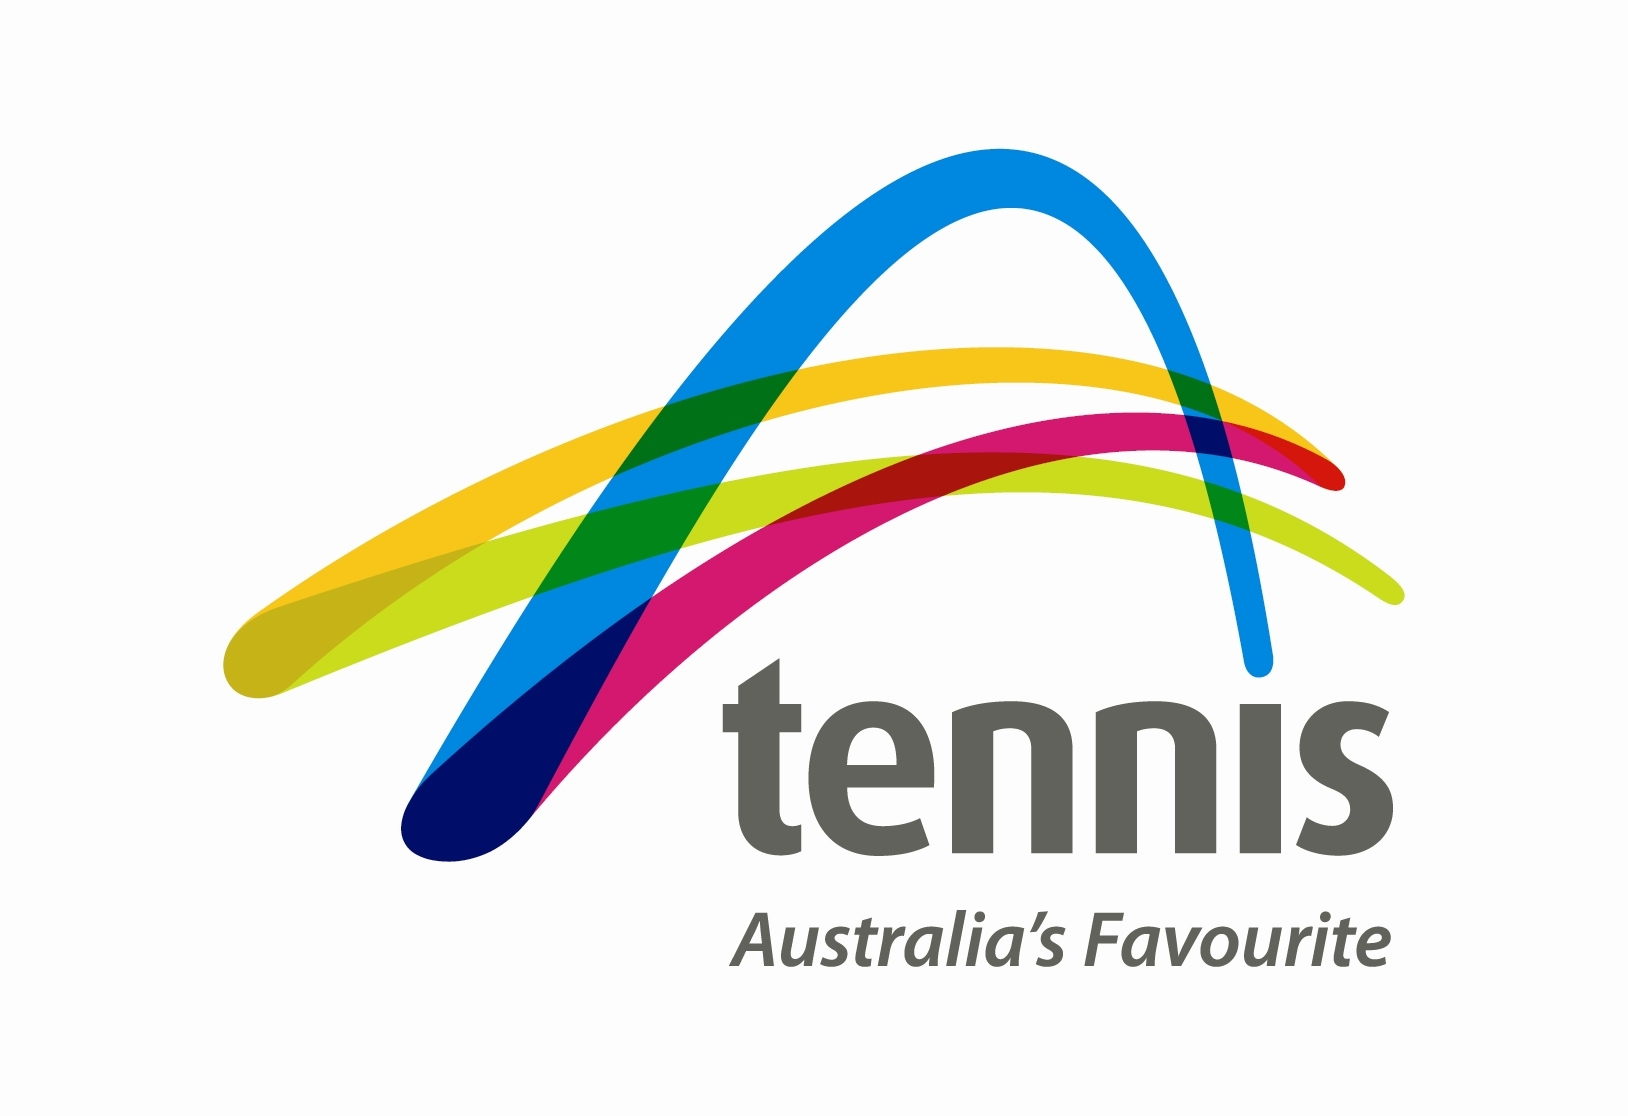 Tennis Australia - Serving Up Change